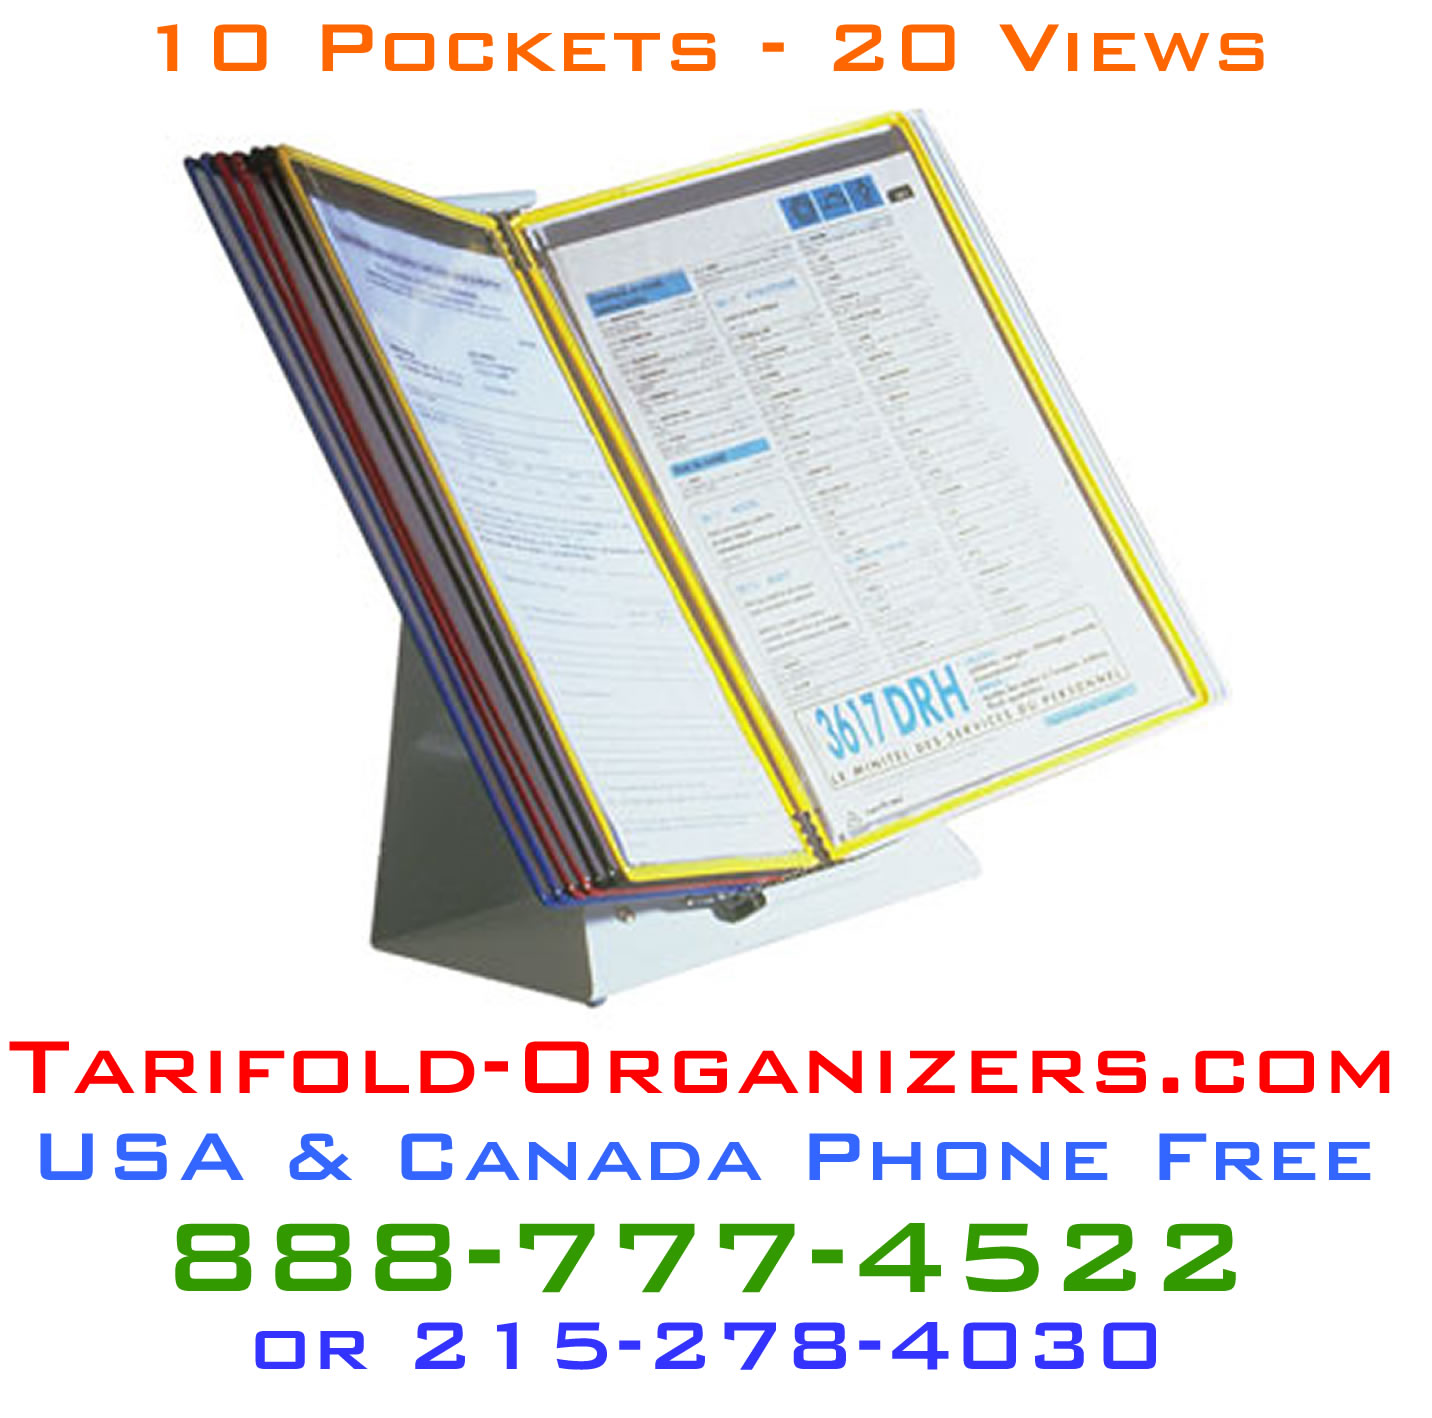 Tarifold Organizers - the number one family of desktop organizers in the USA today.